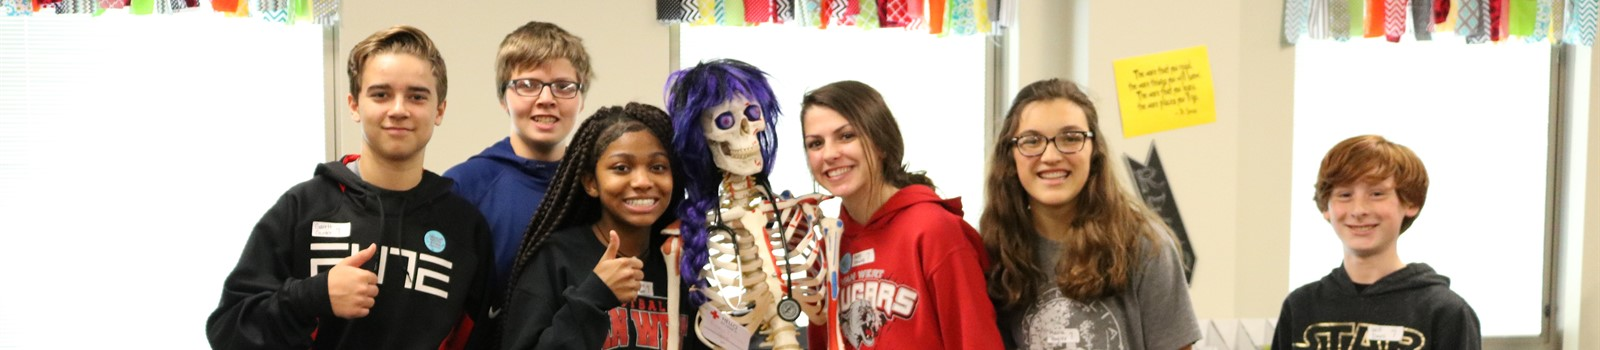 8th grade students post with skeleton during their field trip to Vantage